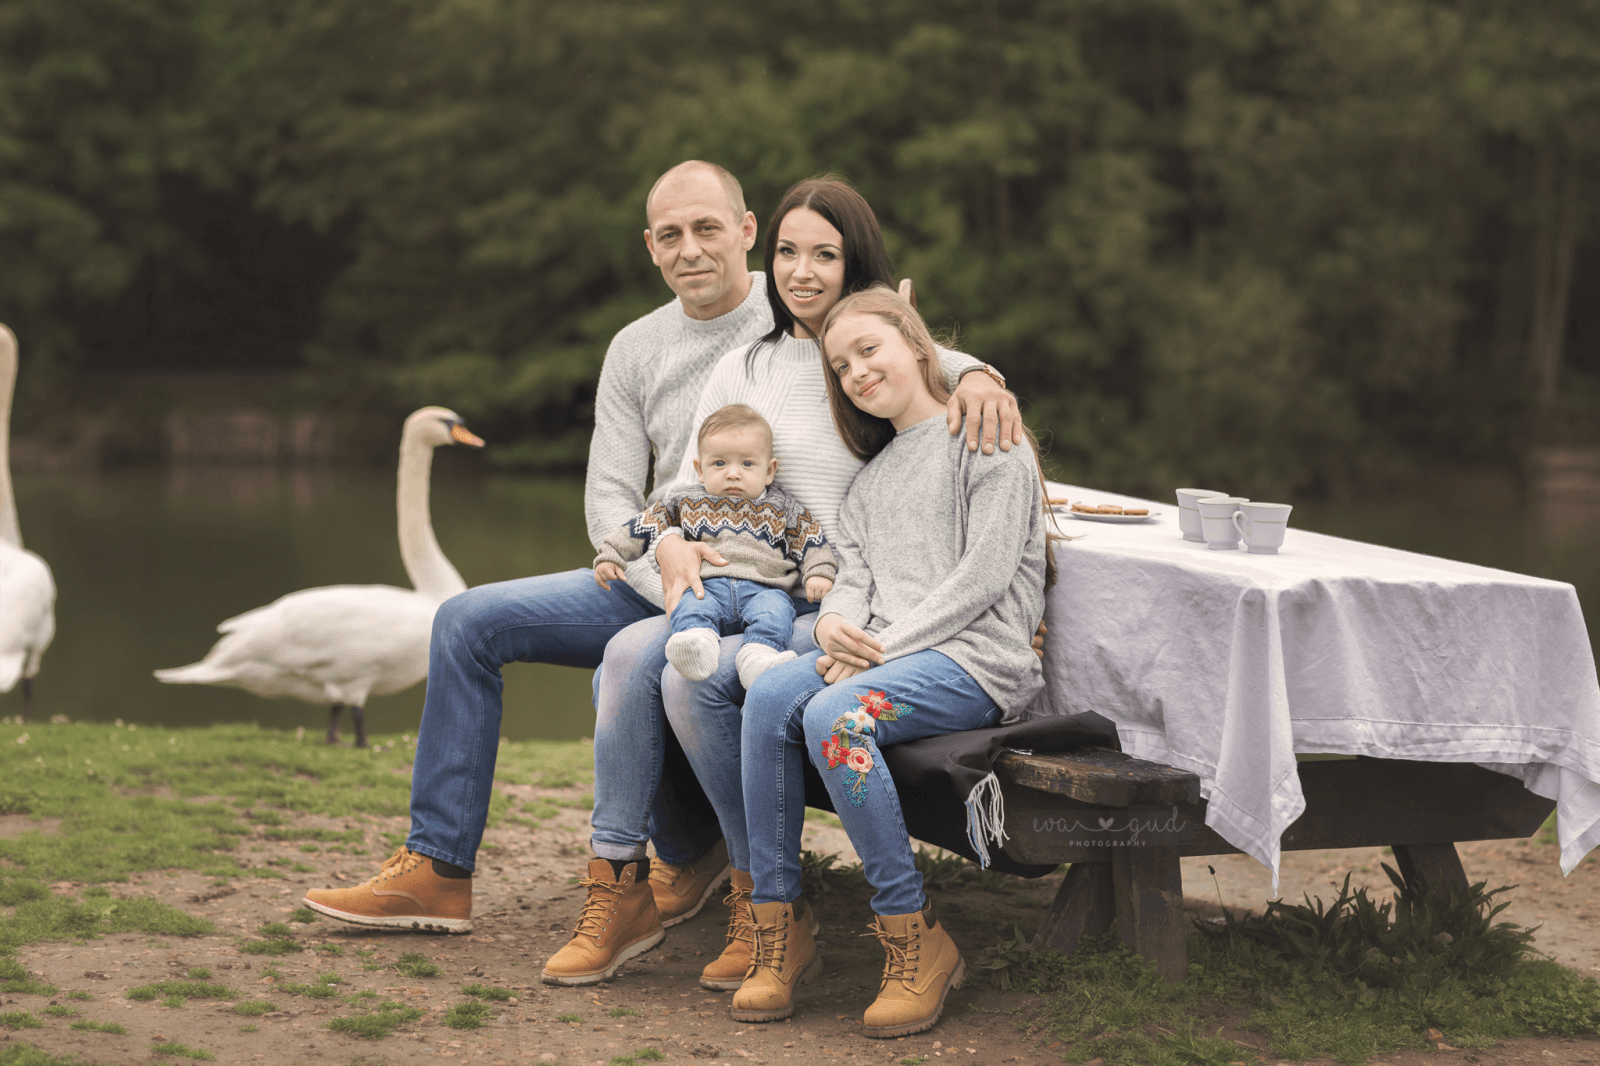 Family photography in North London